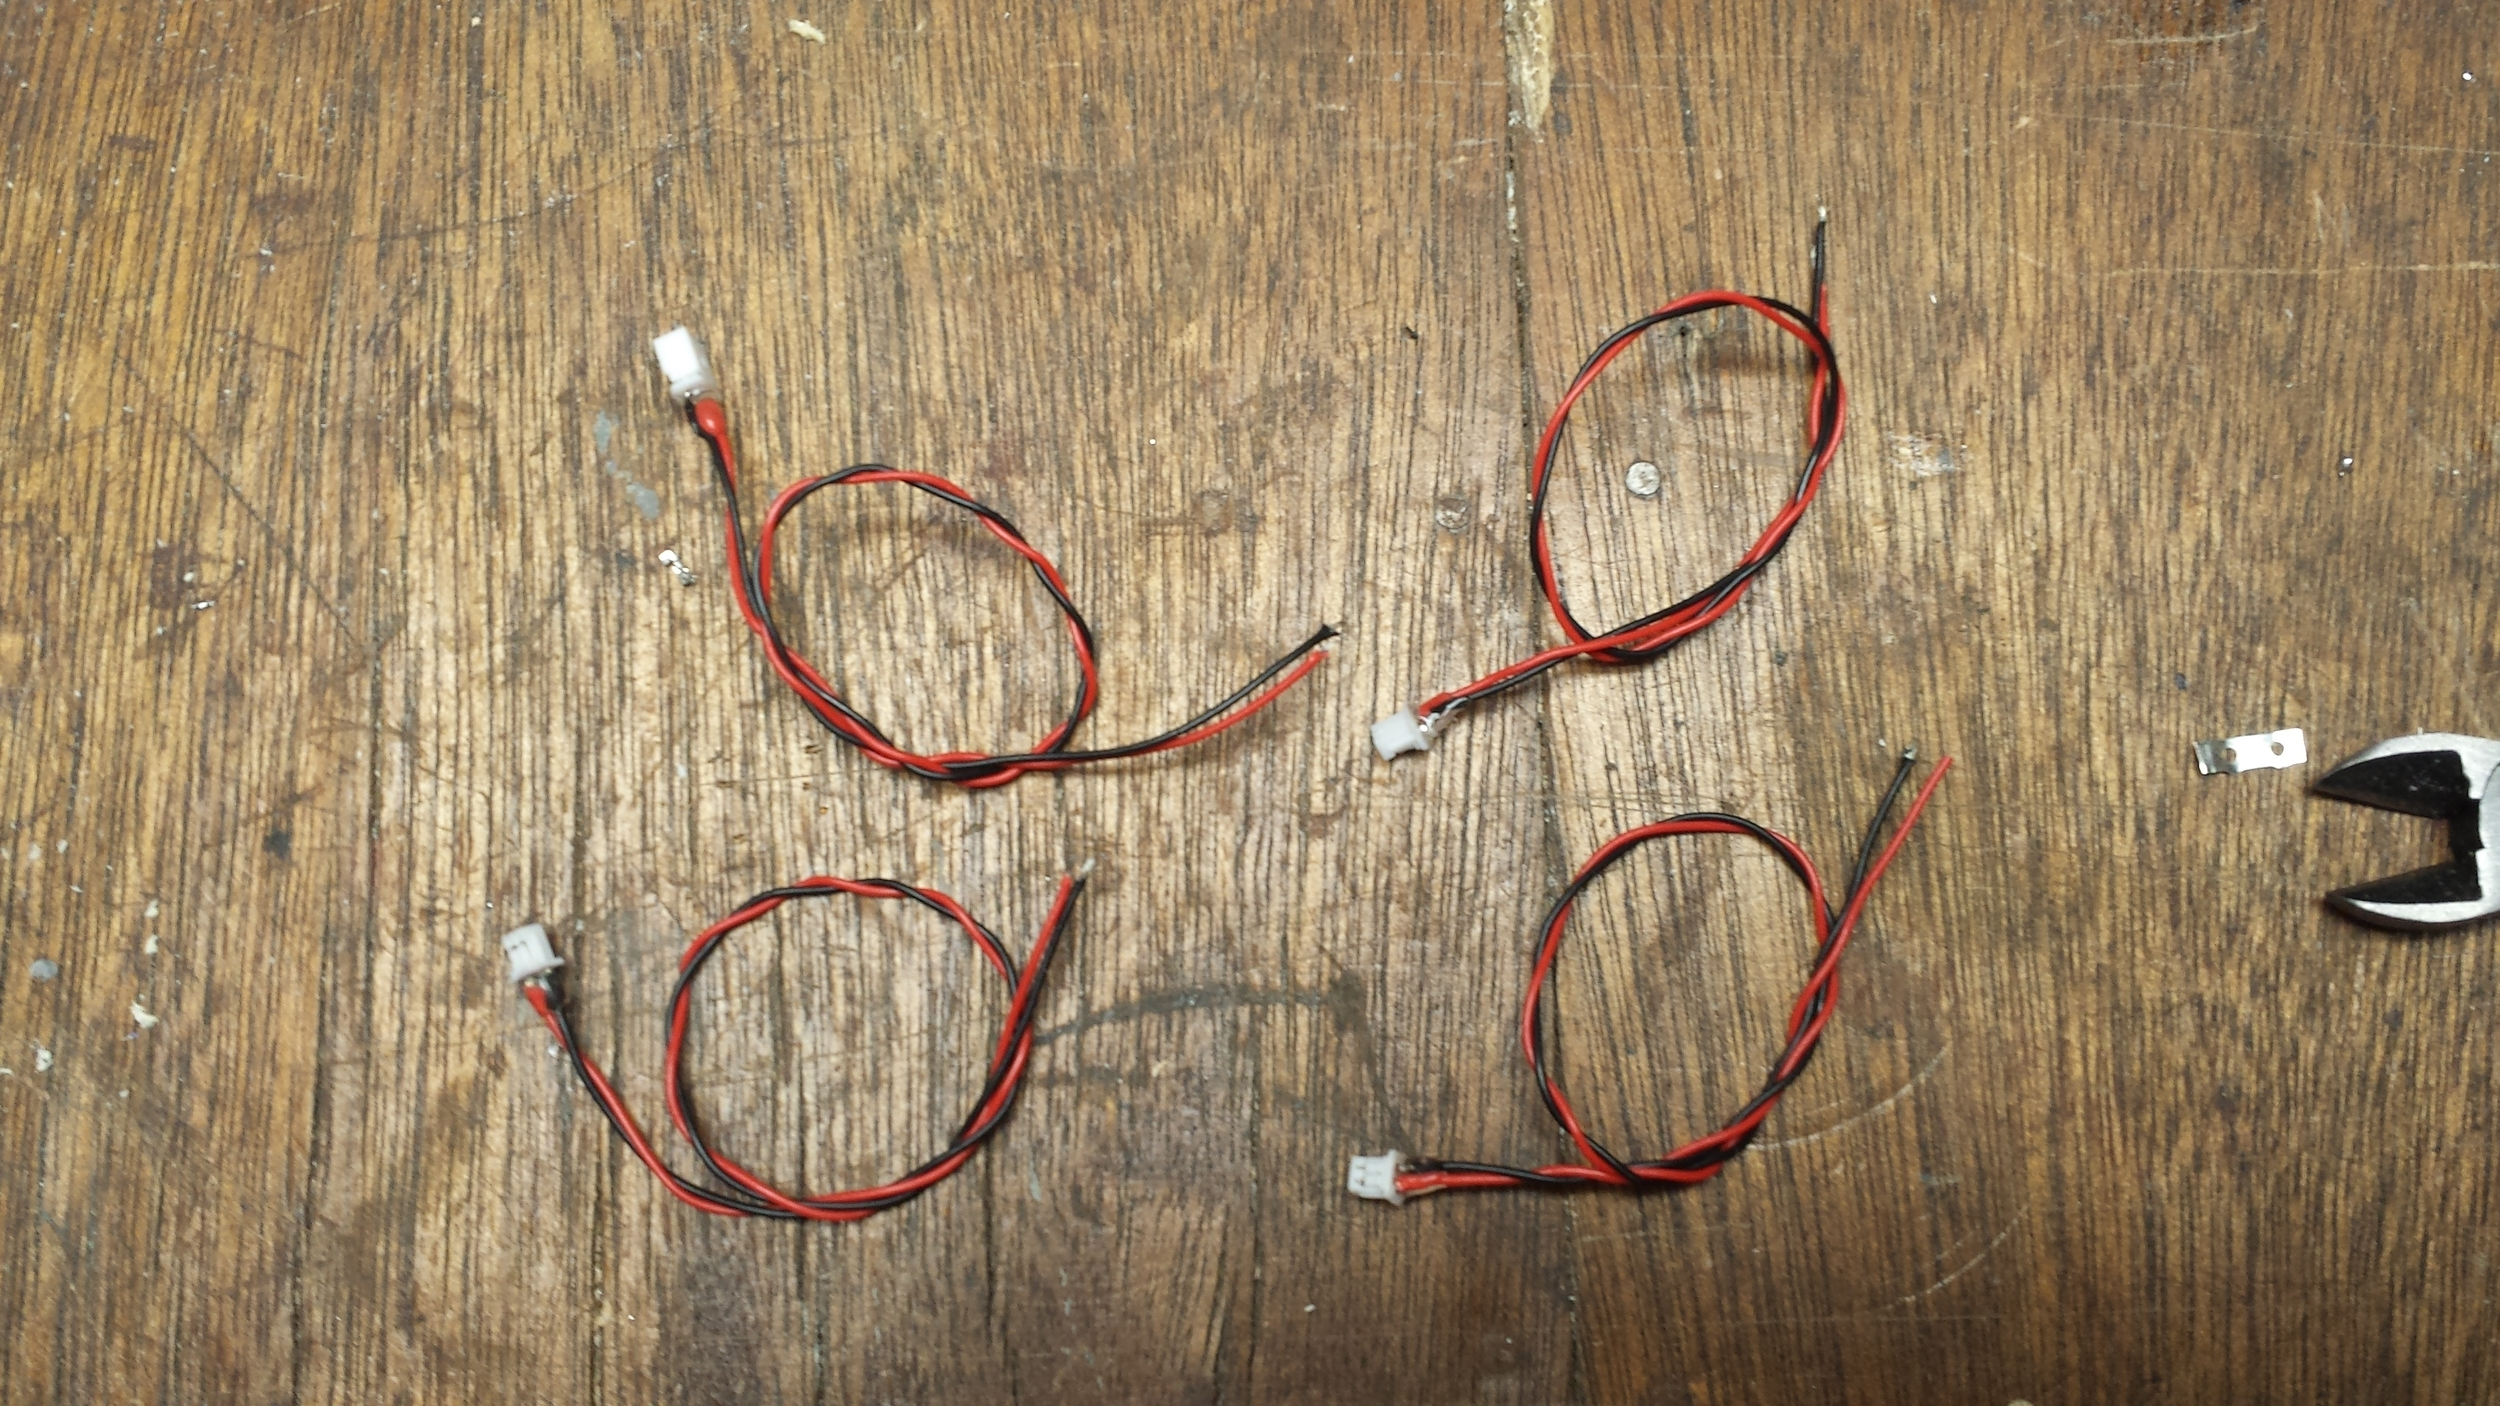 Four Finished Leads with Hot Glue